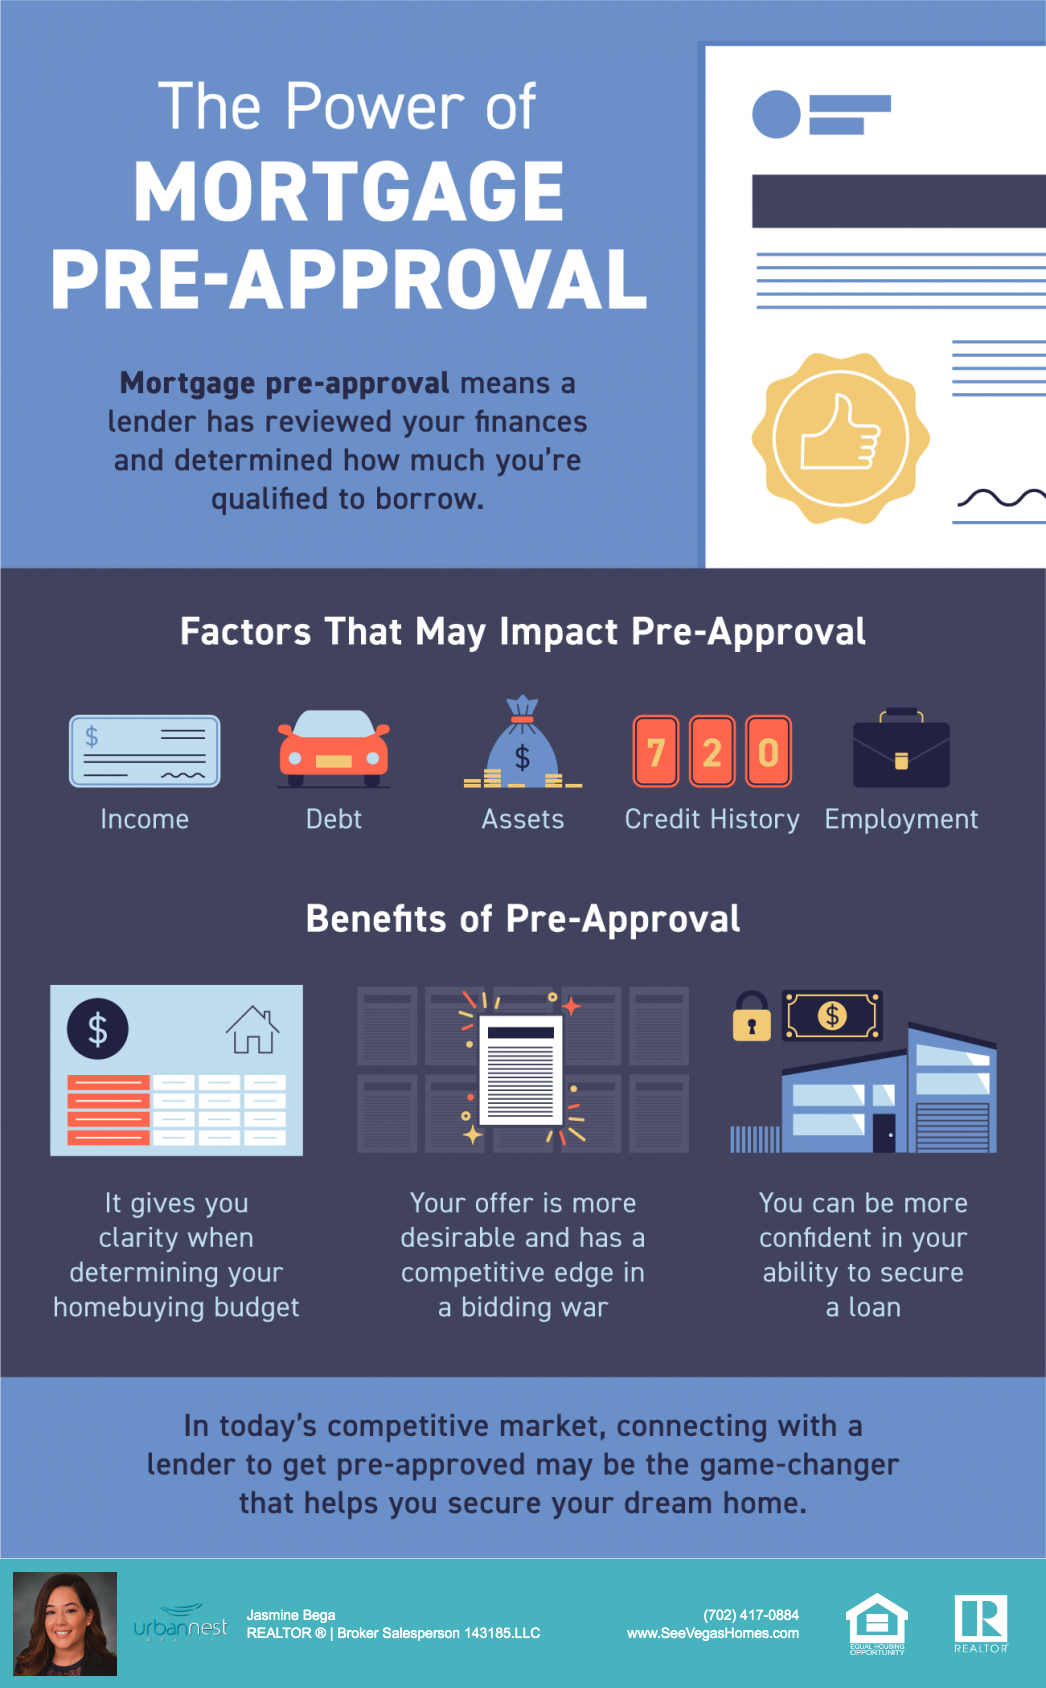 The Power of Mortgage Pre-Approval INFOGRAPHIC SeeVegasHomes